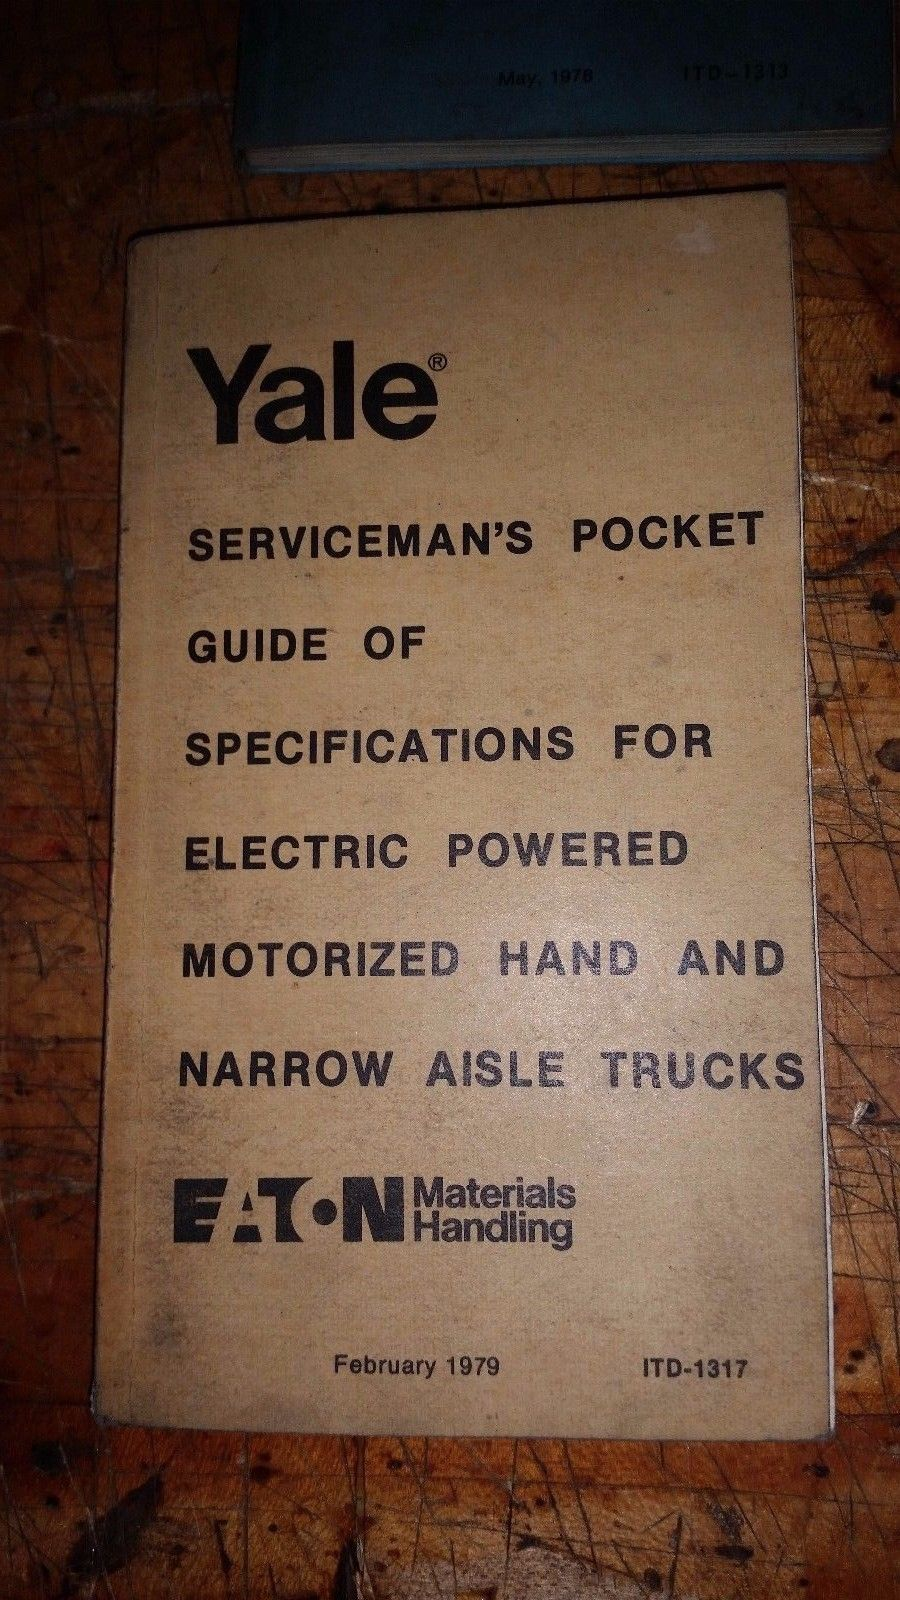 YALE SERVICEMAN'S GUIDE OF SPECIFICATIONS ELECTRIC NARROW, HAND FORK LIFT TRUCKS